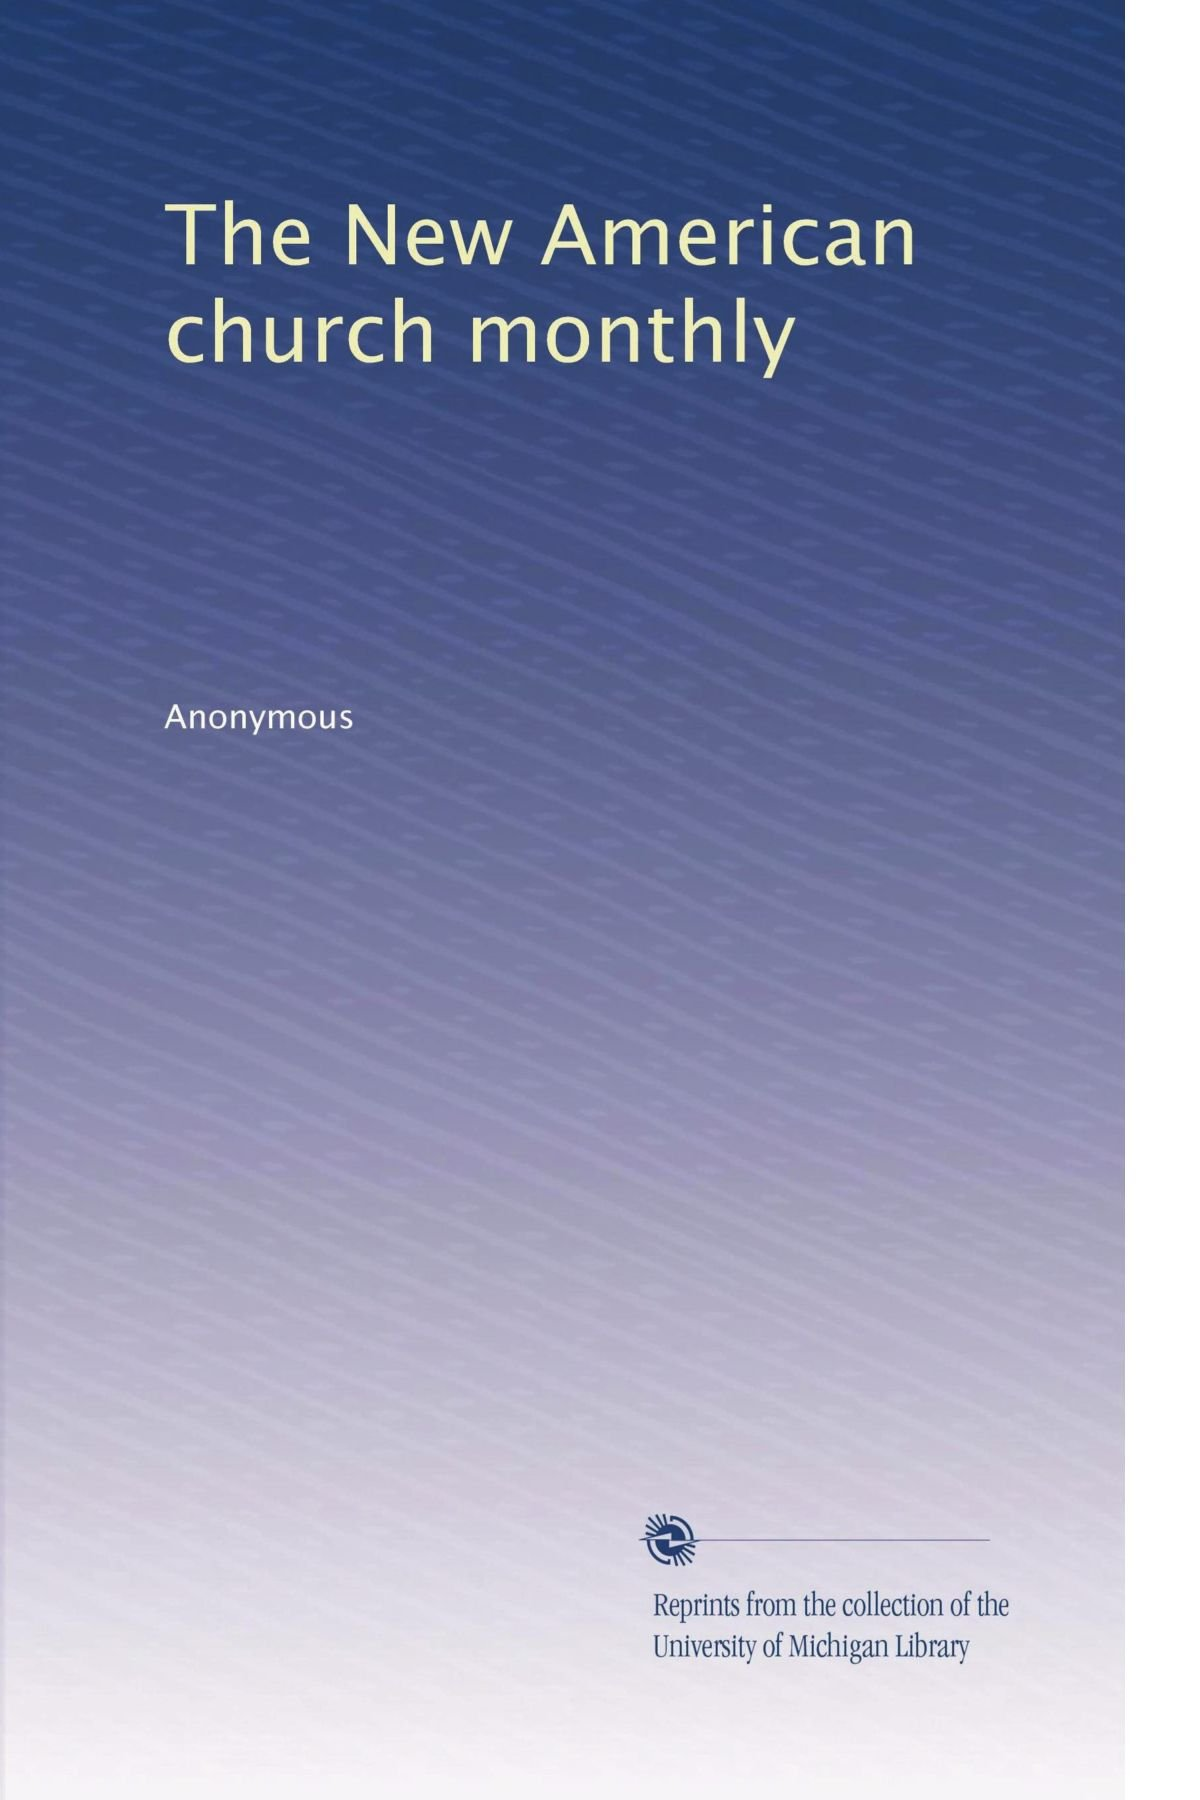 The New American church monthly (Volume 8) PDF